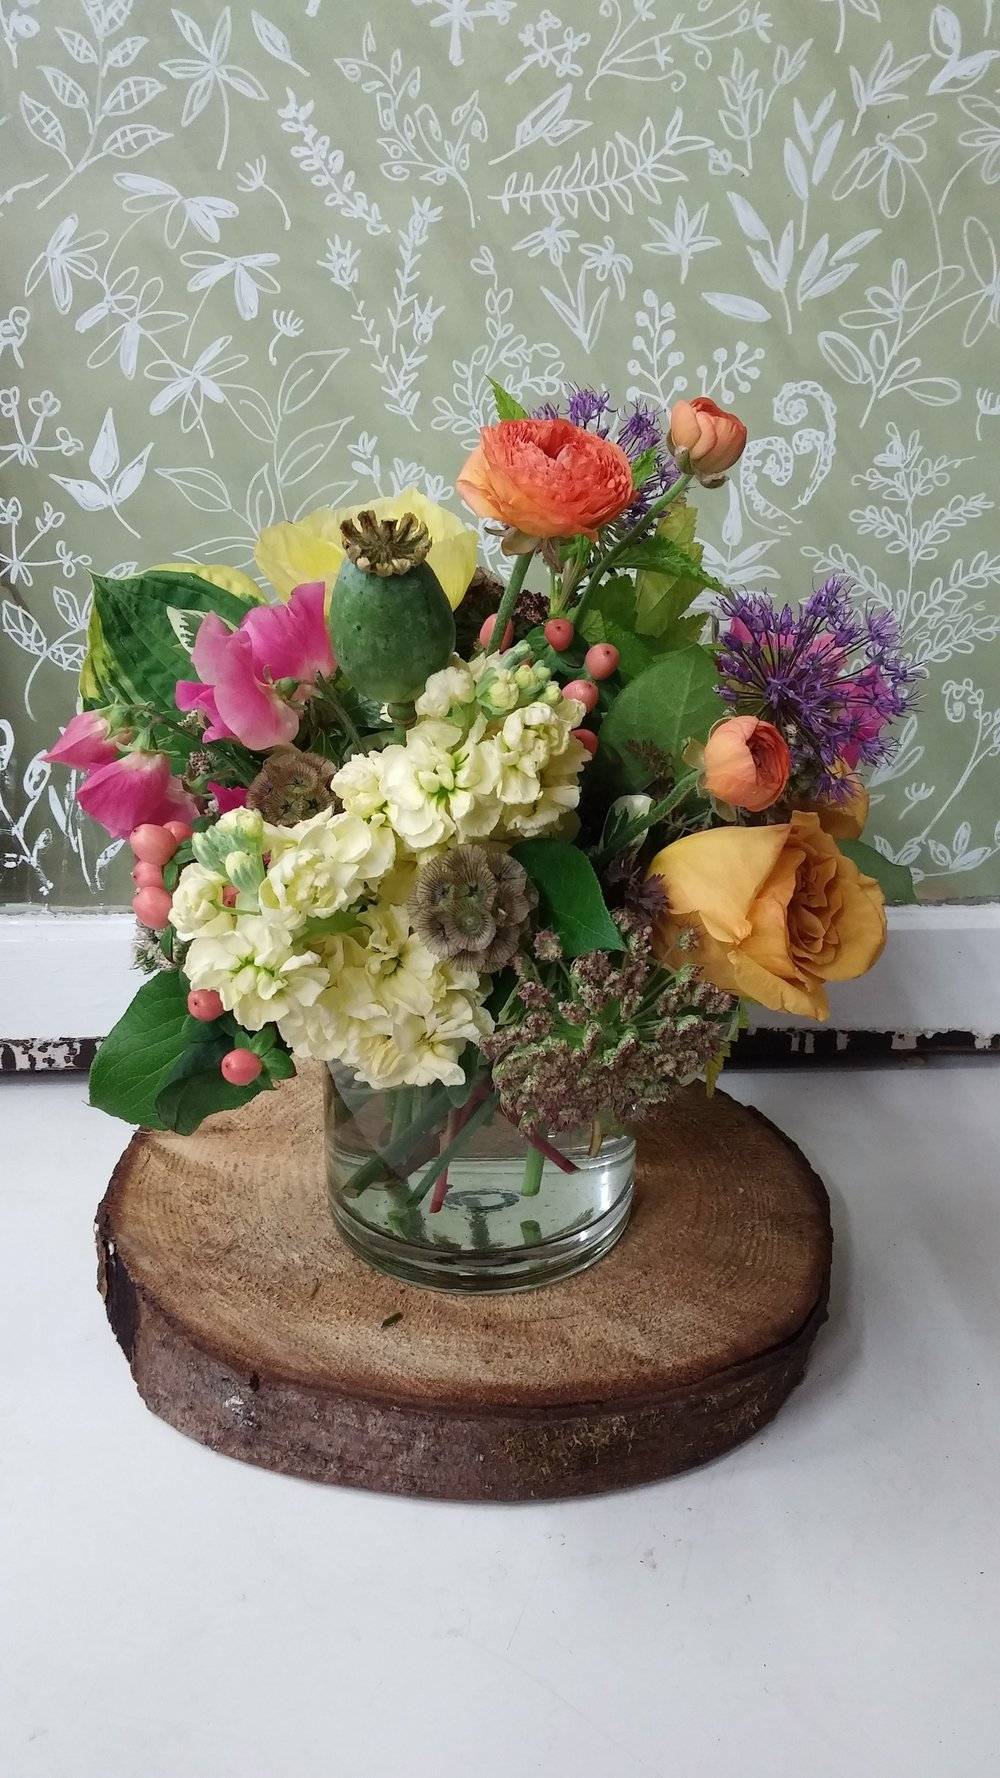 7. Soft palette, eclectic summery bouquet